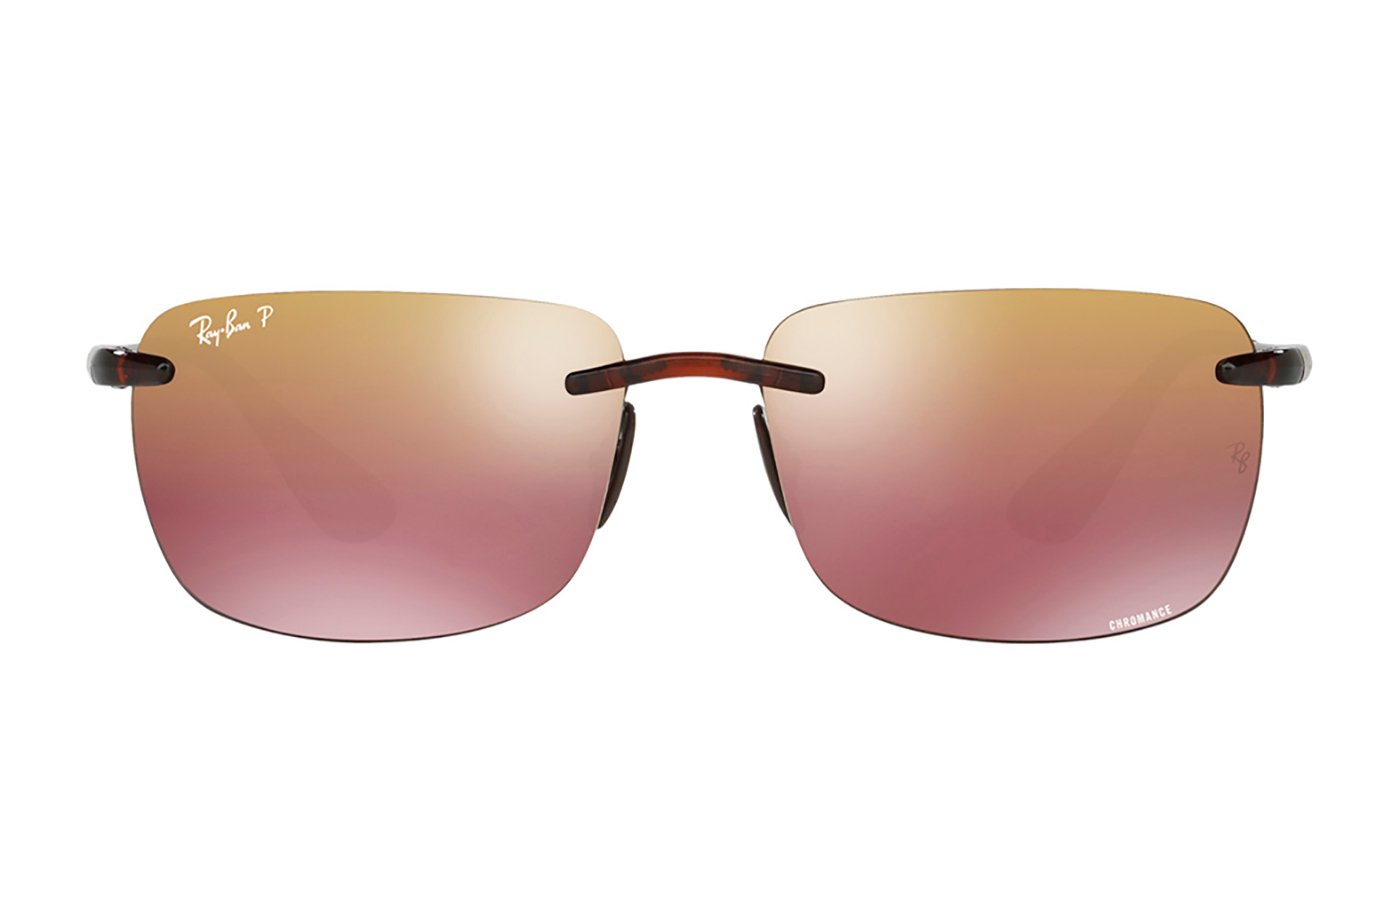 RAY-BAN 0 SHINY BROWN 0RB4255 60 604/6B POLARIZADA